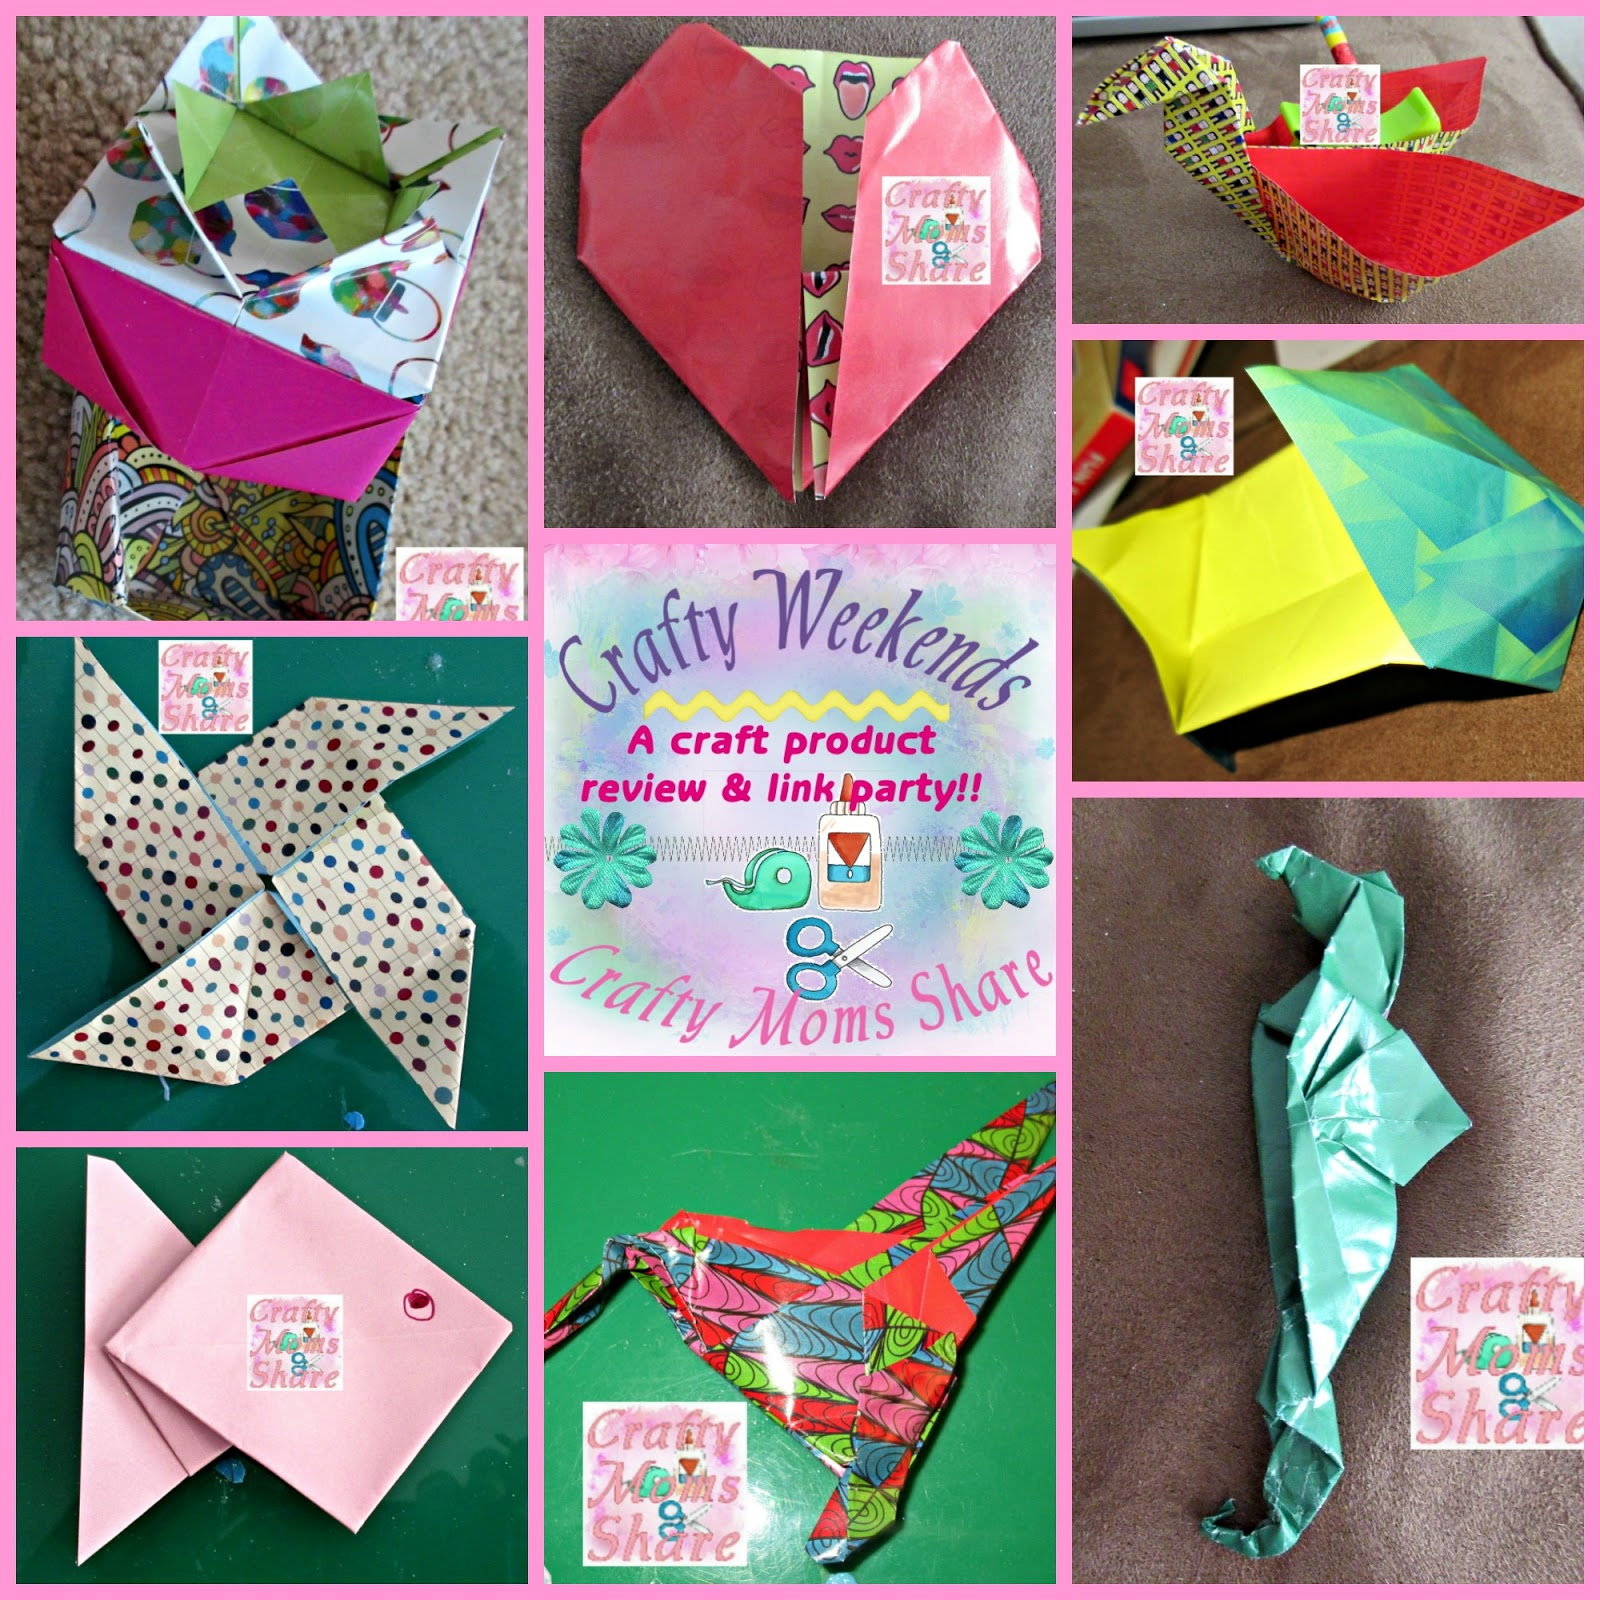 Crafty moms share origami fun a crafty weekends review link i have some great kits and books for you today for different levels of origami makers from beginner to master look at some of the fun things i made with jeuxipadfo Choice Image